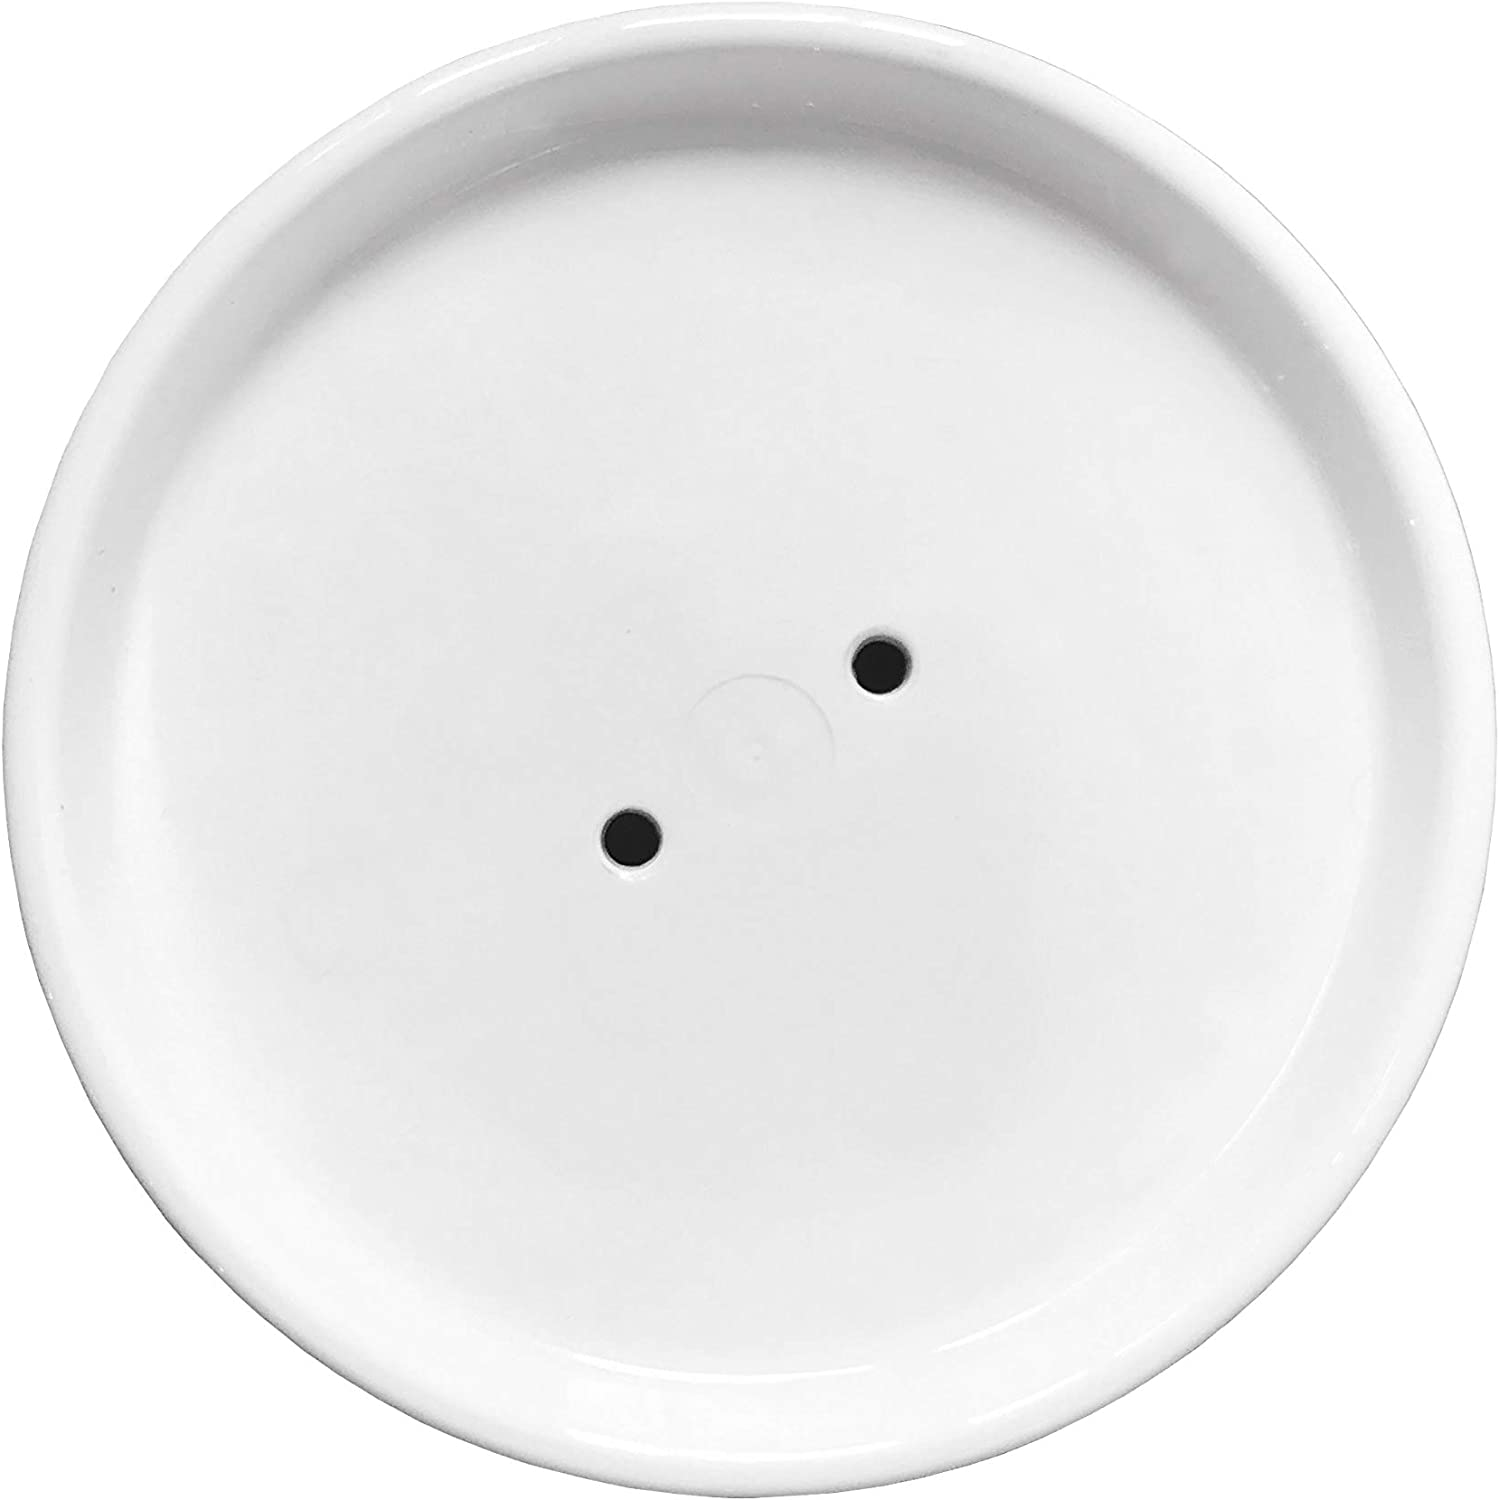 BFA Pot Trays Plastic Round-Shape Flower Plant Pot Trays Saucers with Water Receiver 7.6 inches Inner Diameter